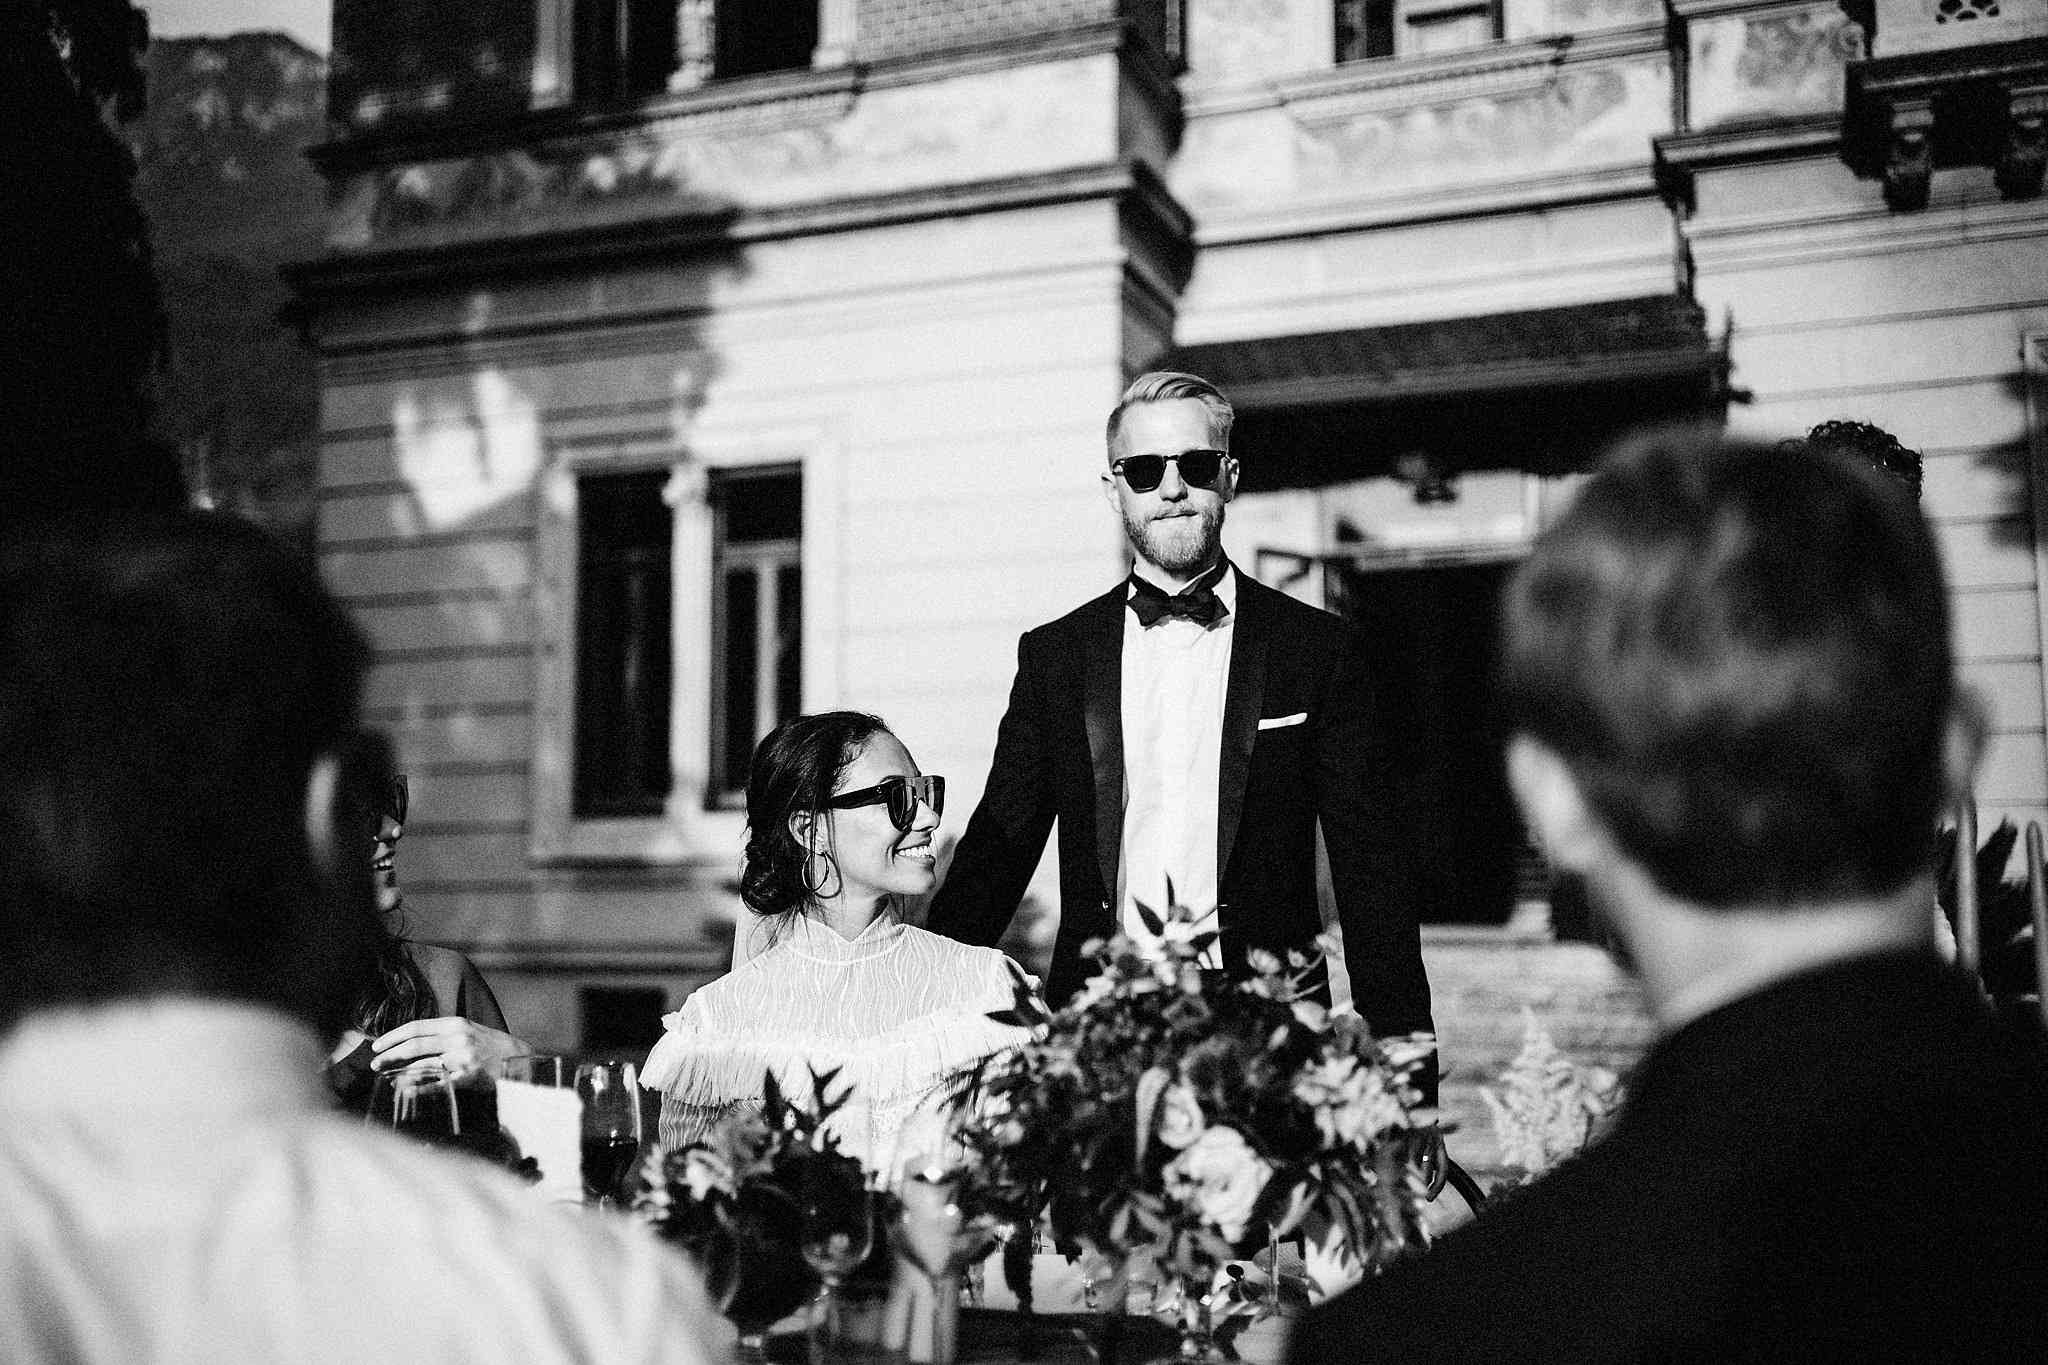 <p>Newlyweds at Dinner</p><br><br>